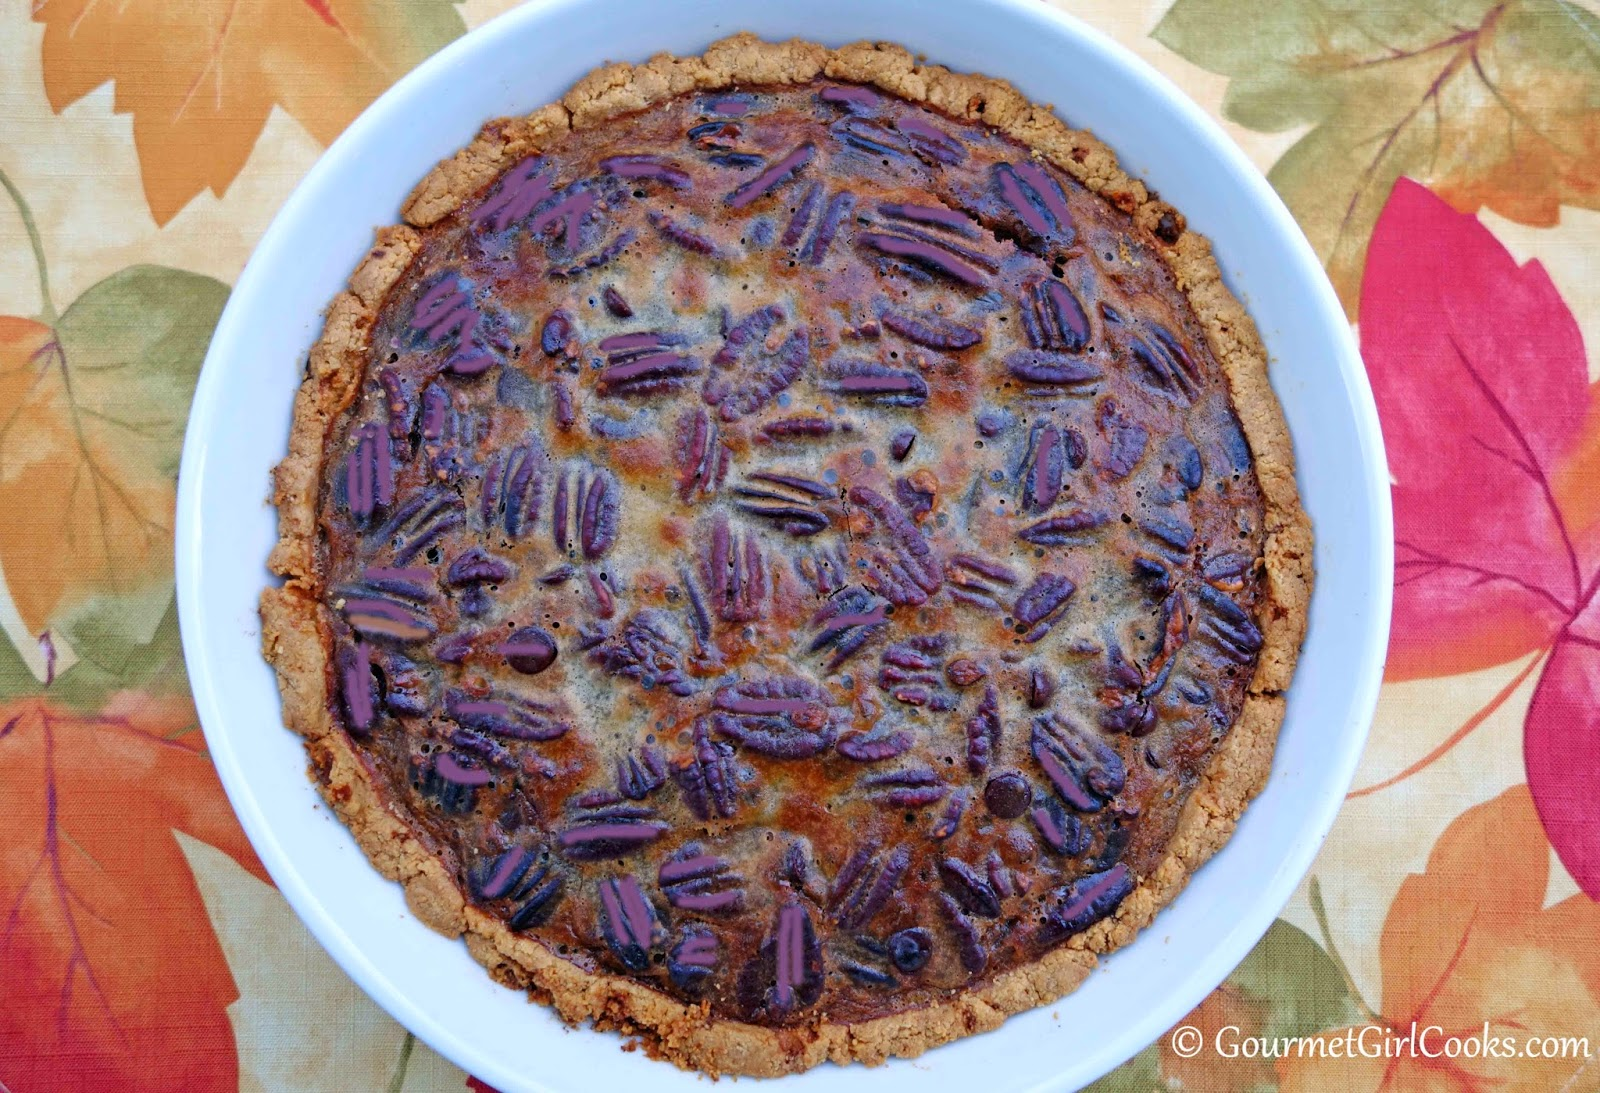 Gourmet Girl Cooks: Chocolate Pecan Pie - Low Carb & No Sugar Added